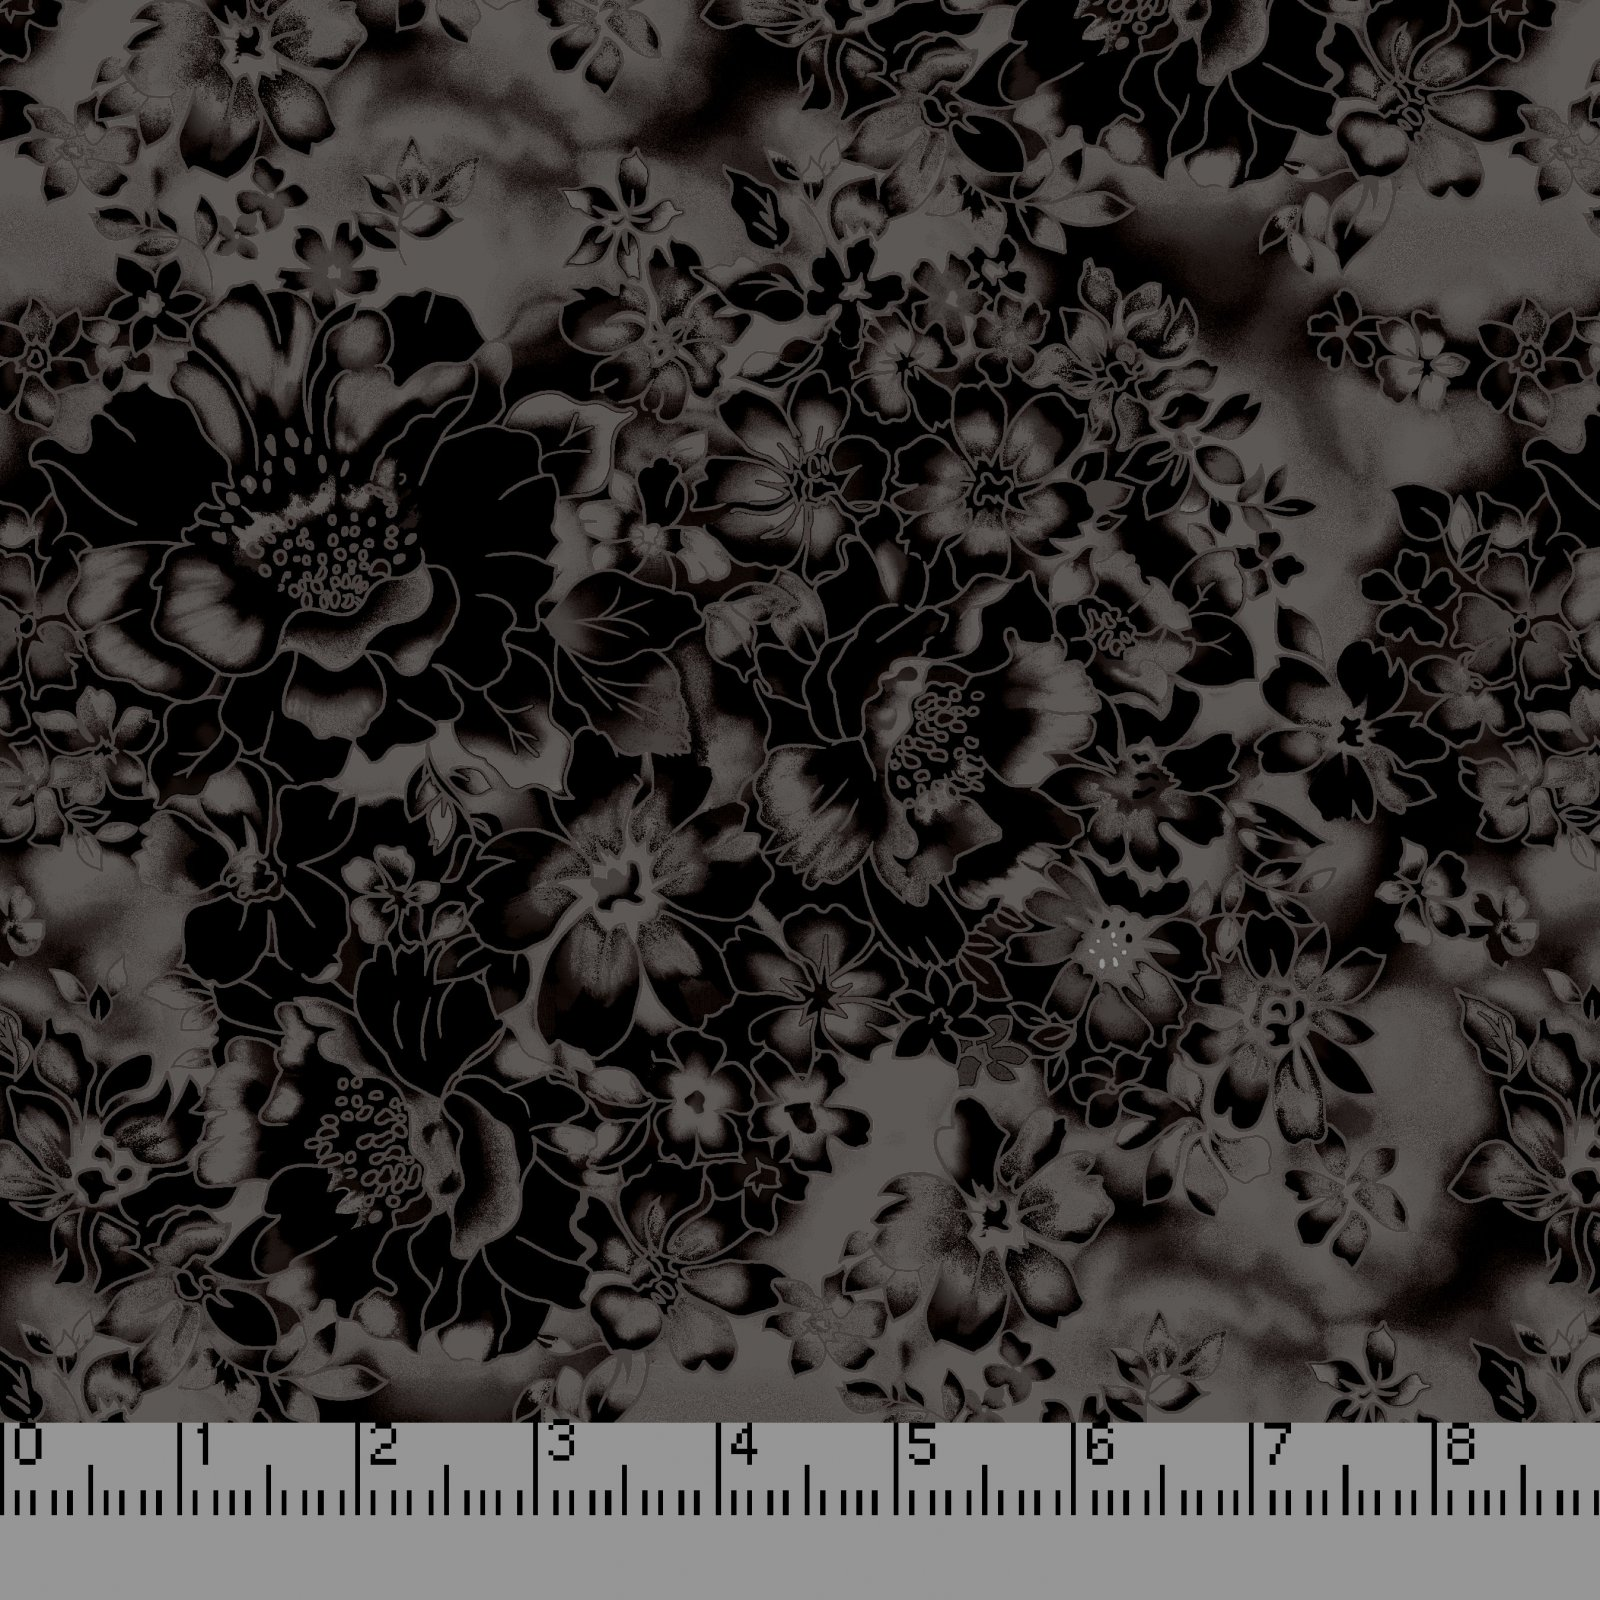 108 Faded Floral Black